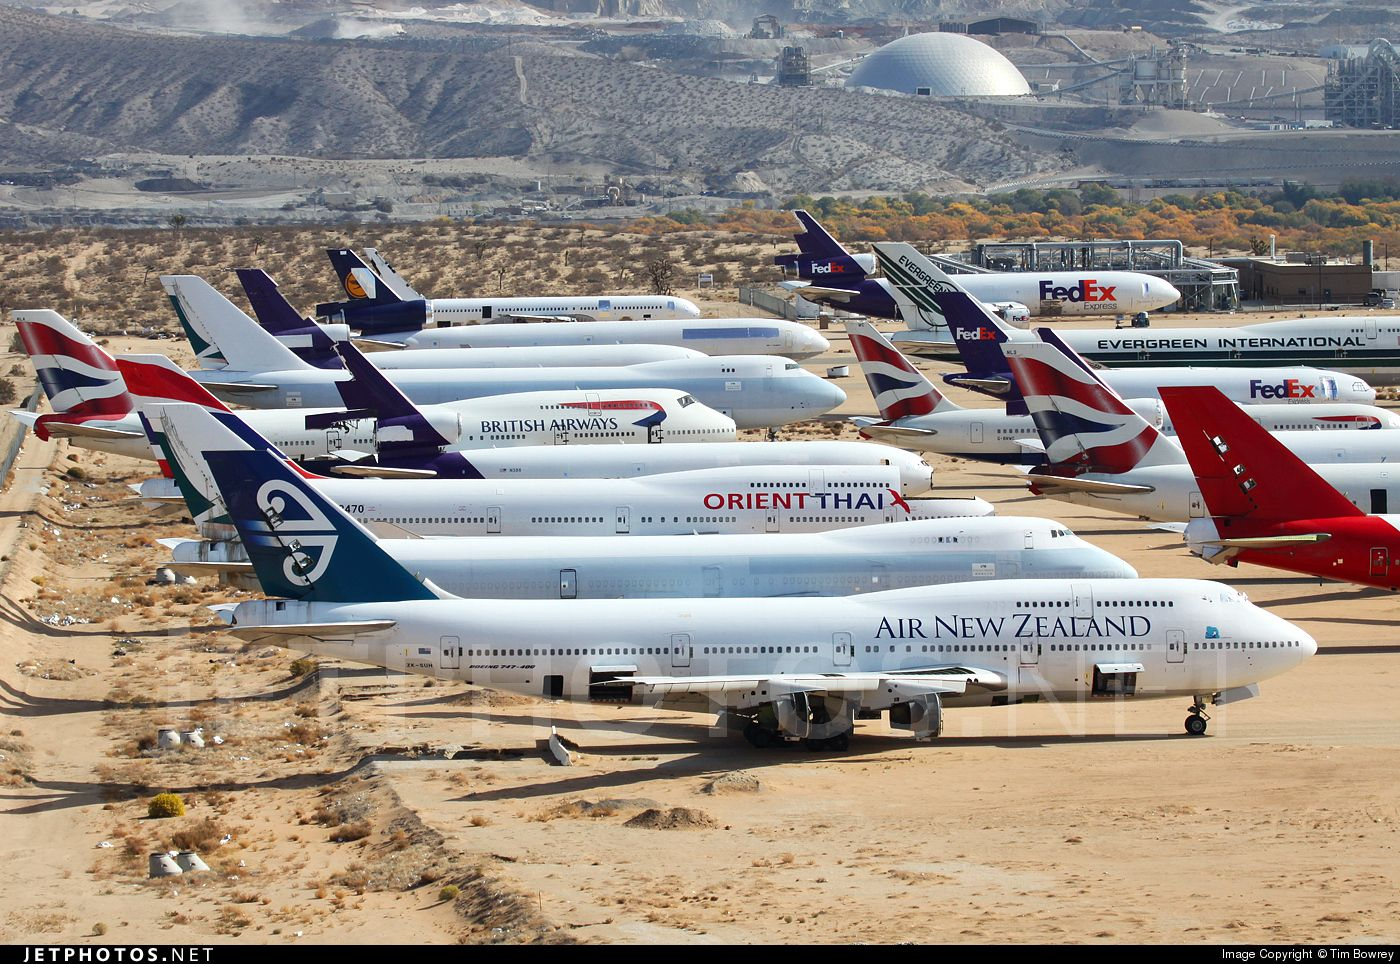 Eight planes are 747s five are MD 10s